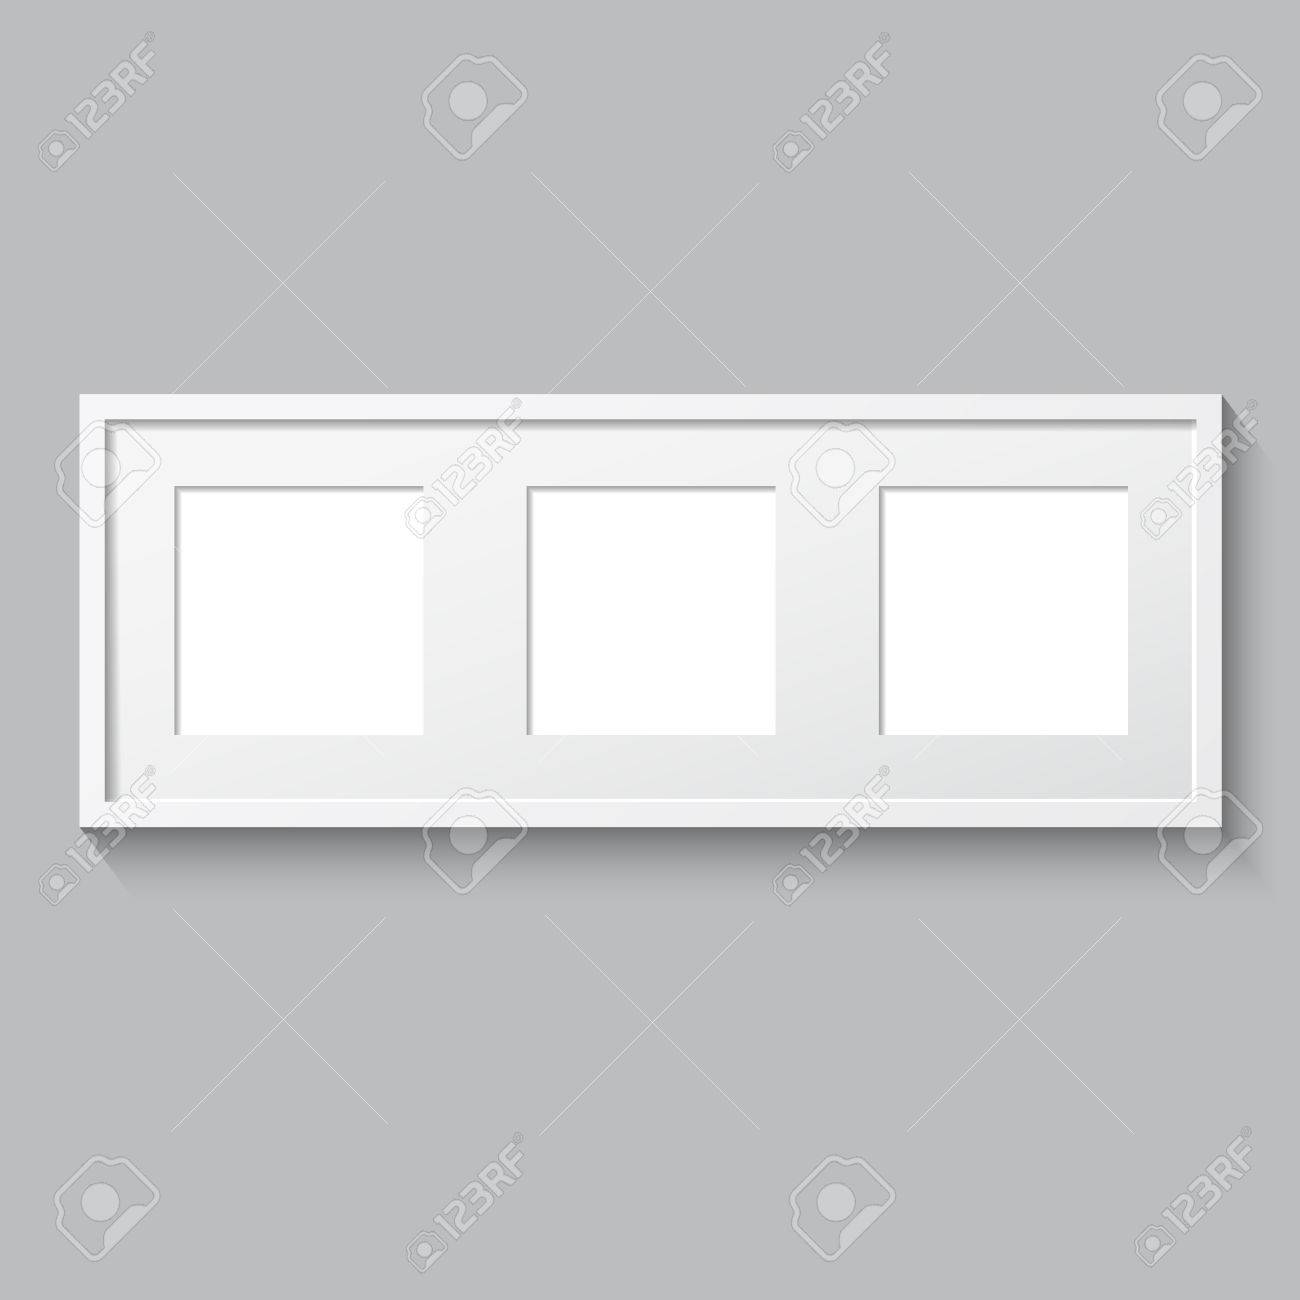 3d picture frame design vector for image or text realistic template